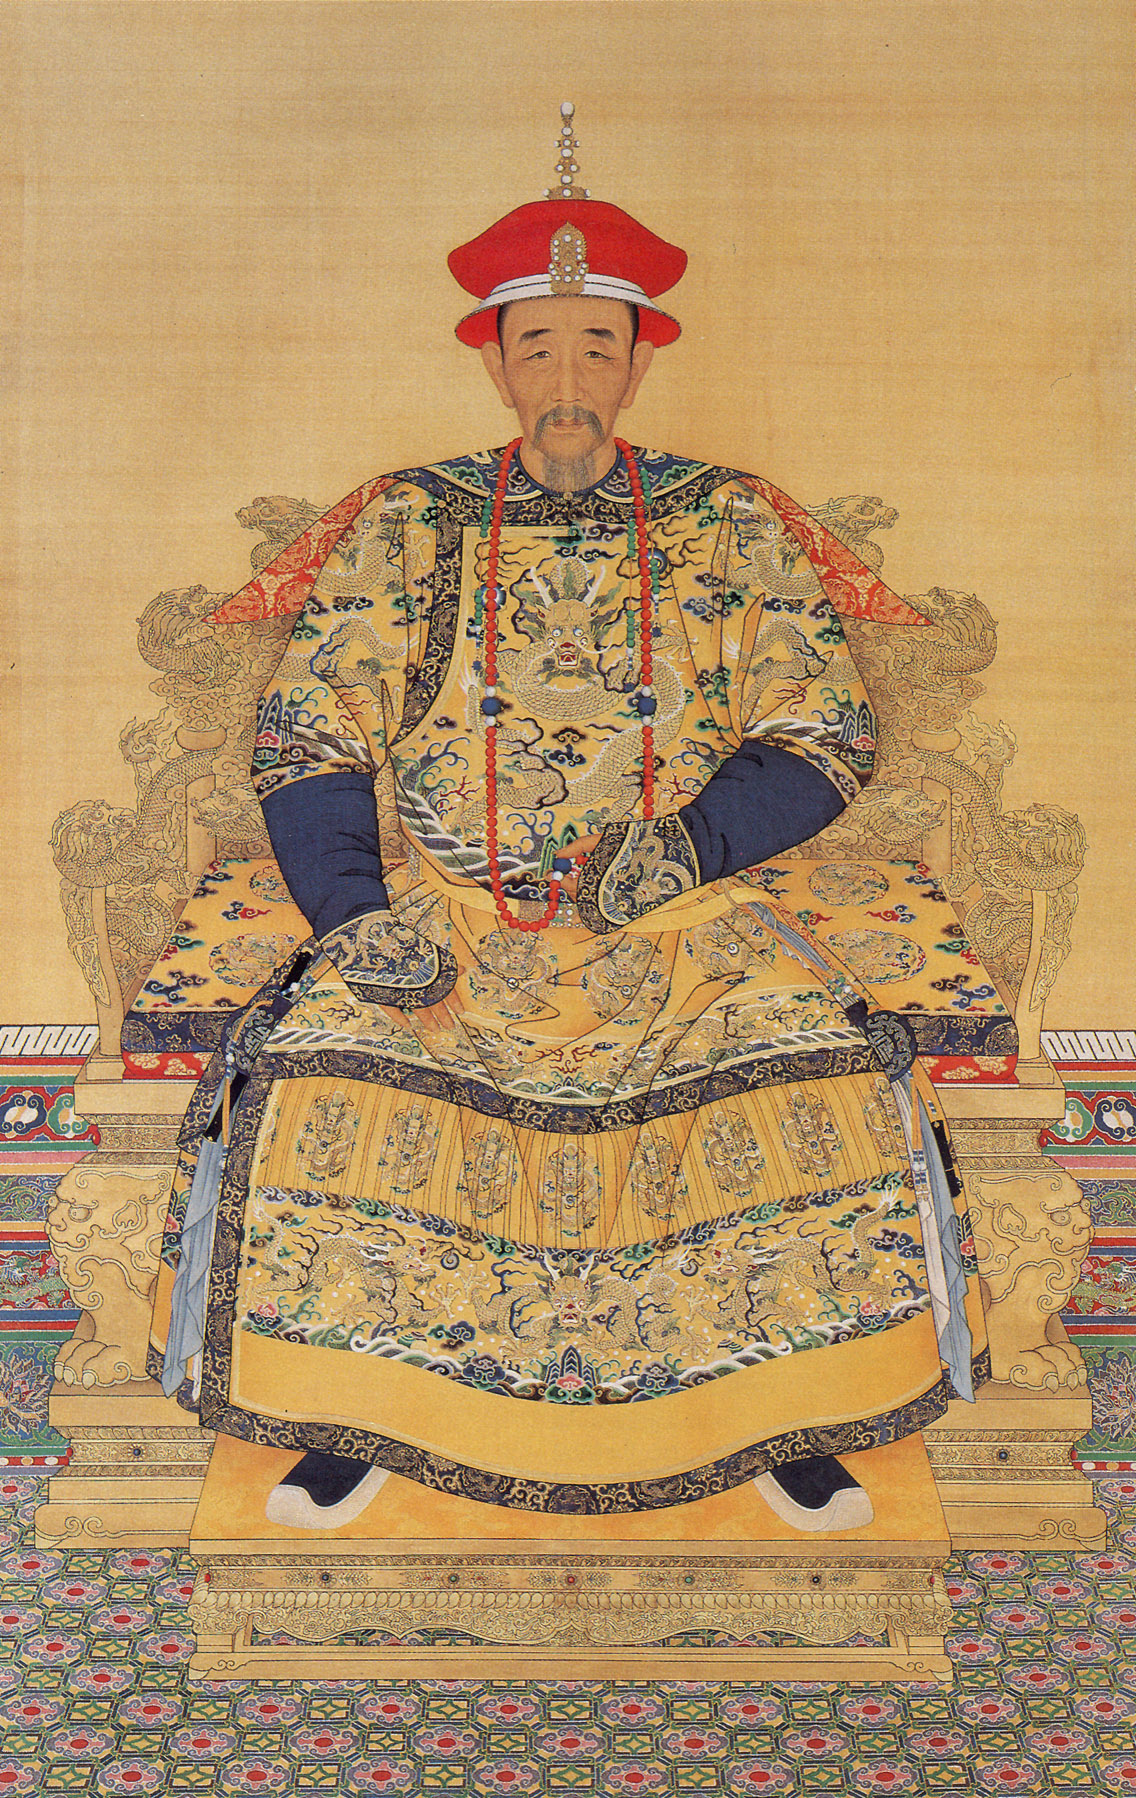 Portrait_of_the_Kangxi_Emperor_in_Court_